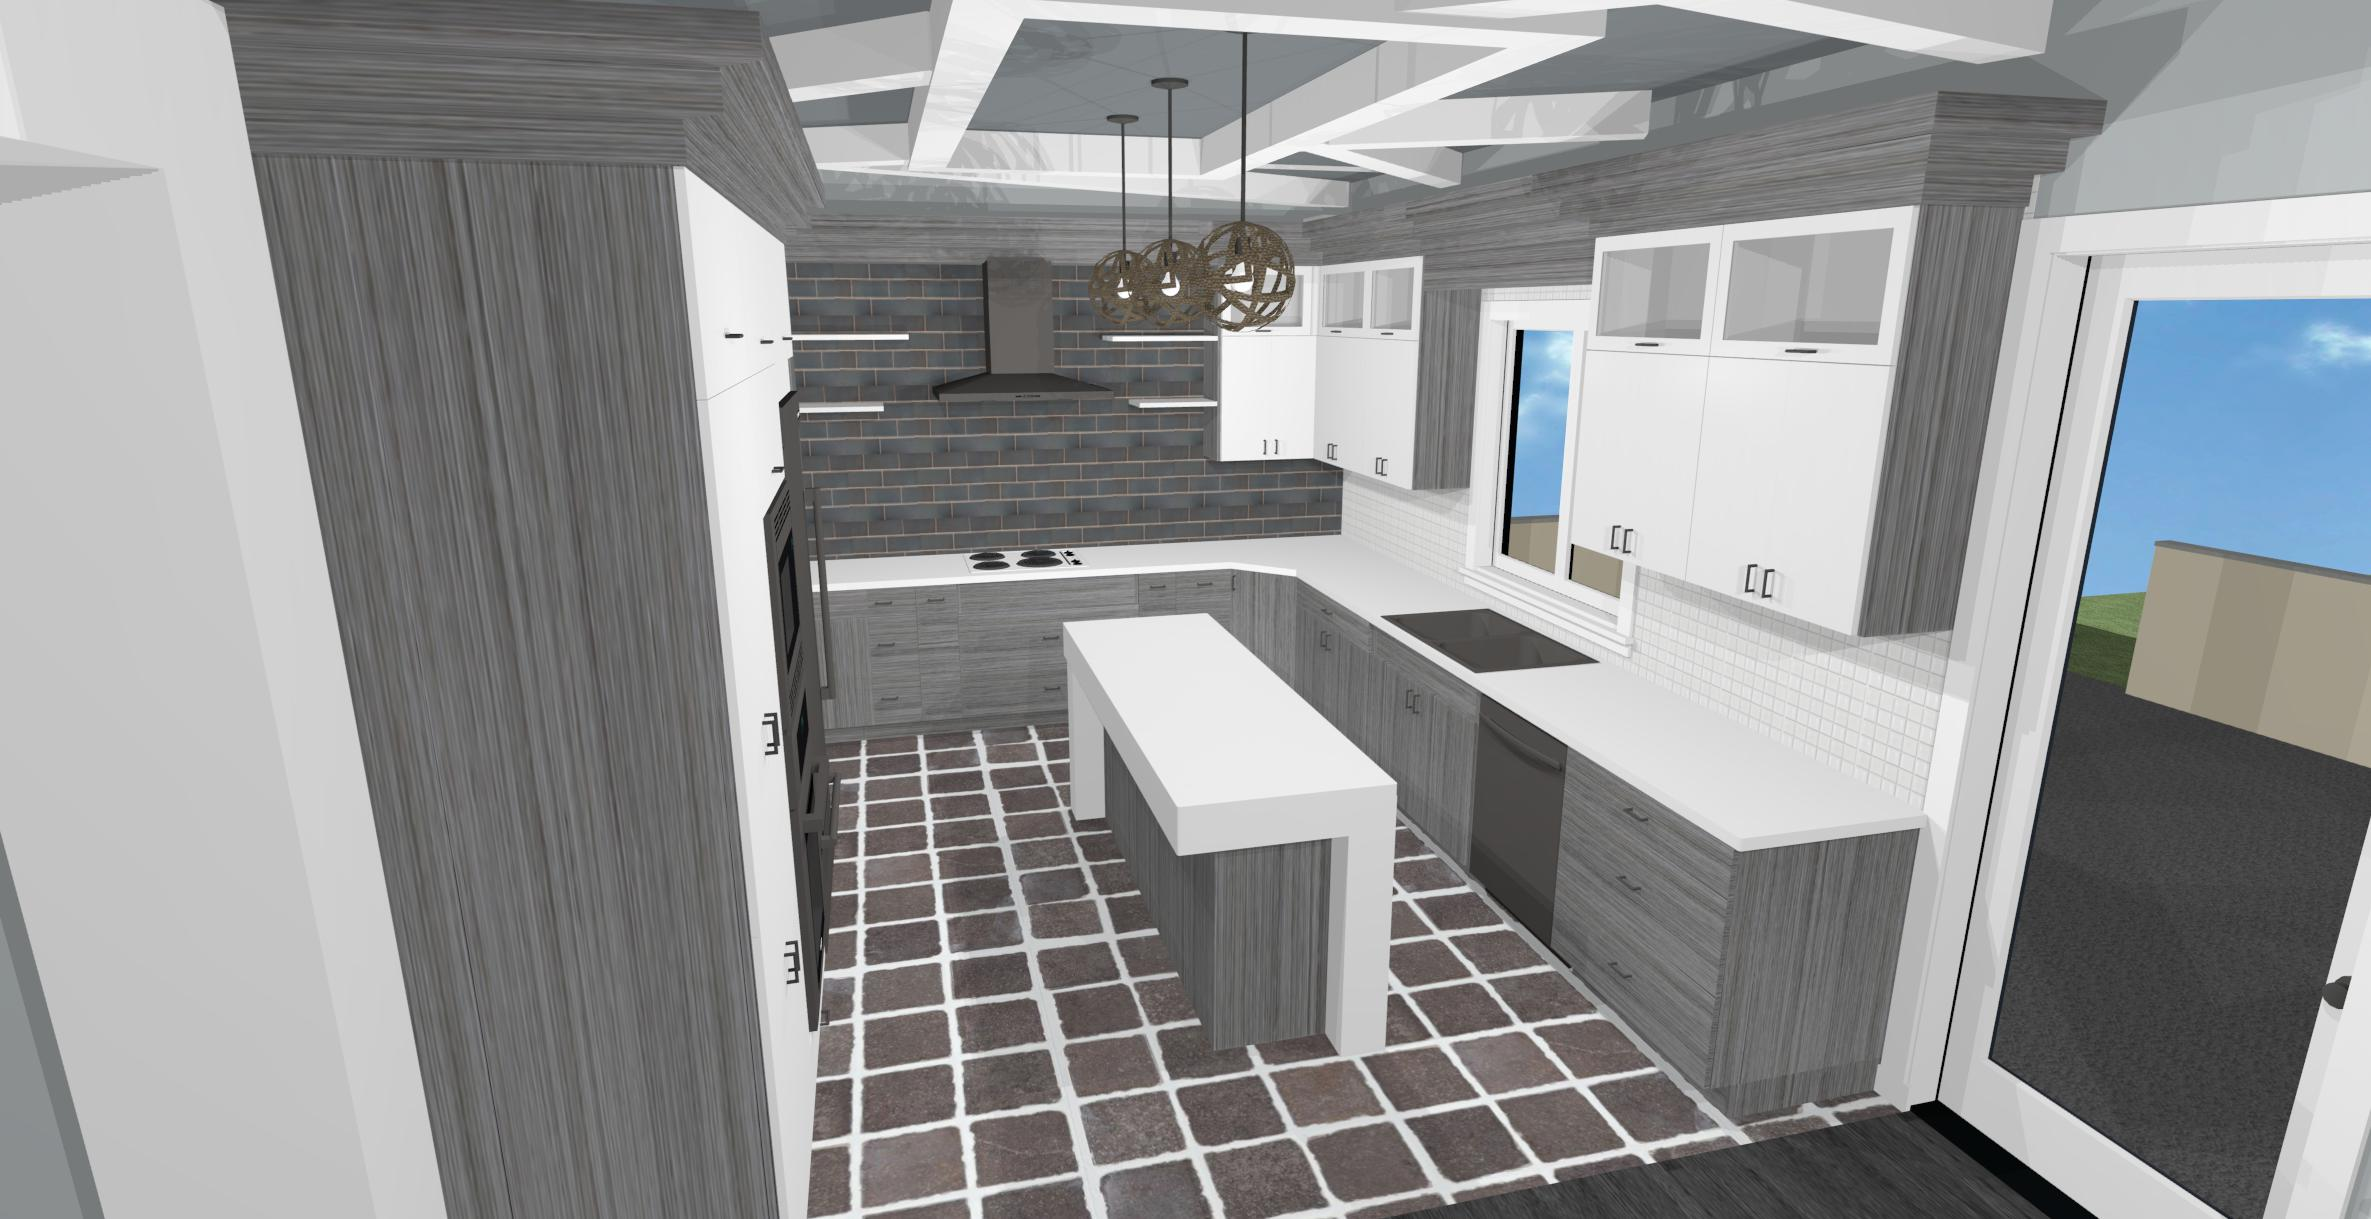 Projects archives sweet home 3d designs - Sweet home design ...